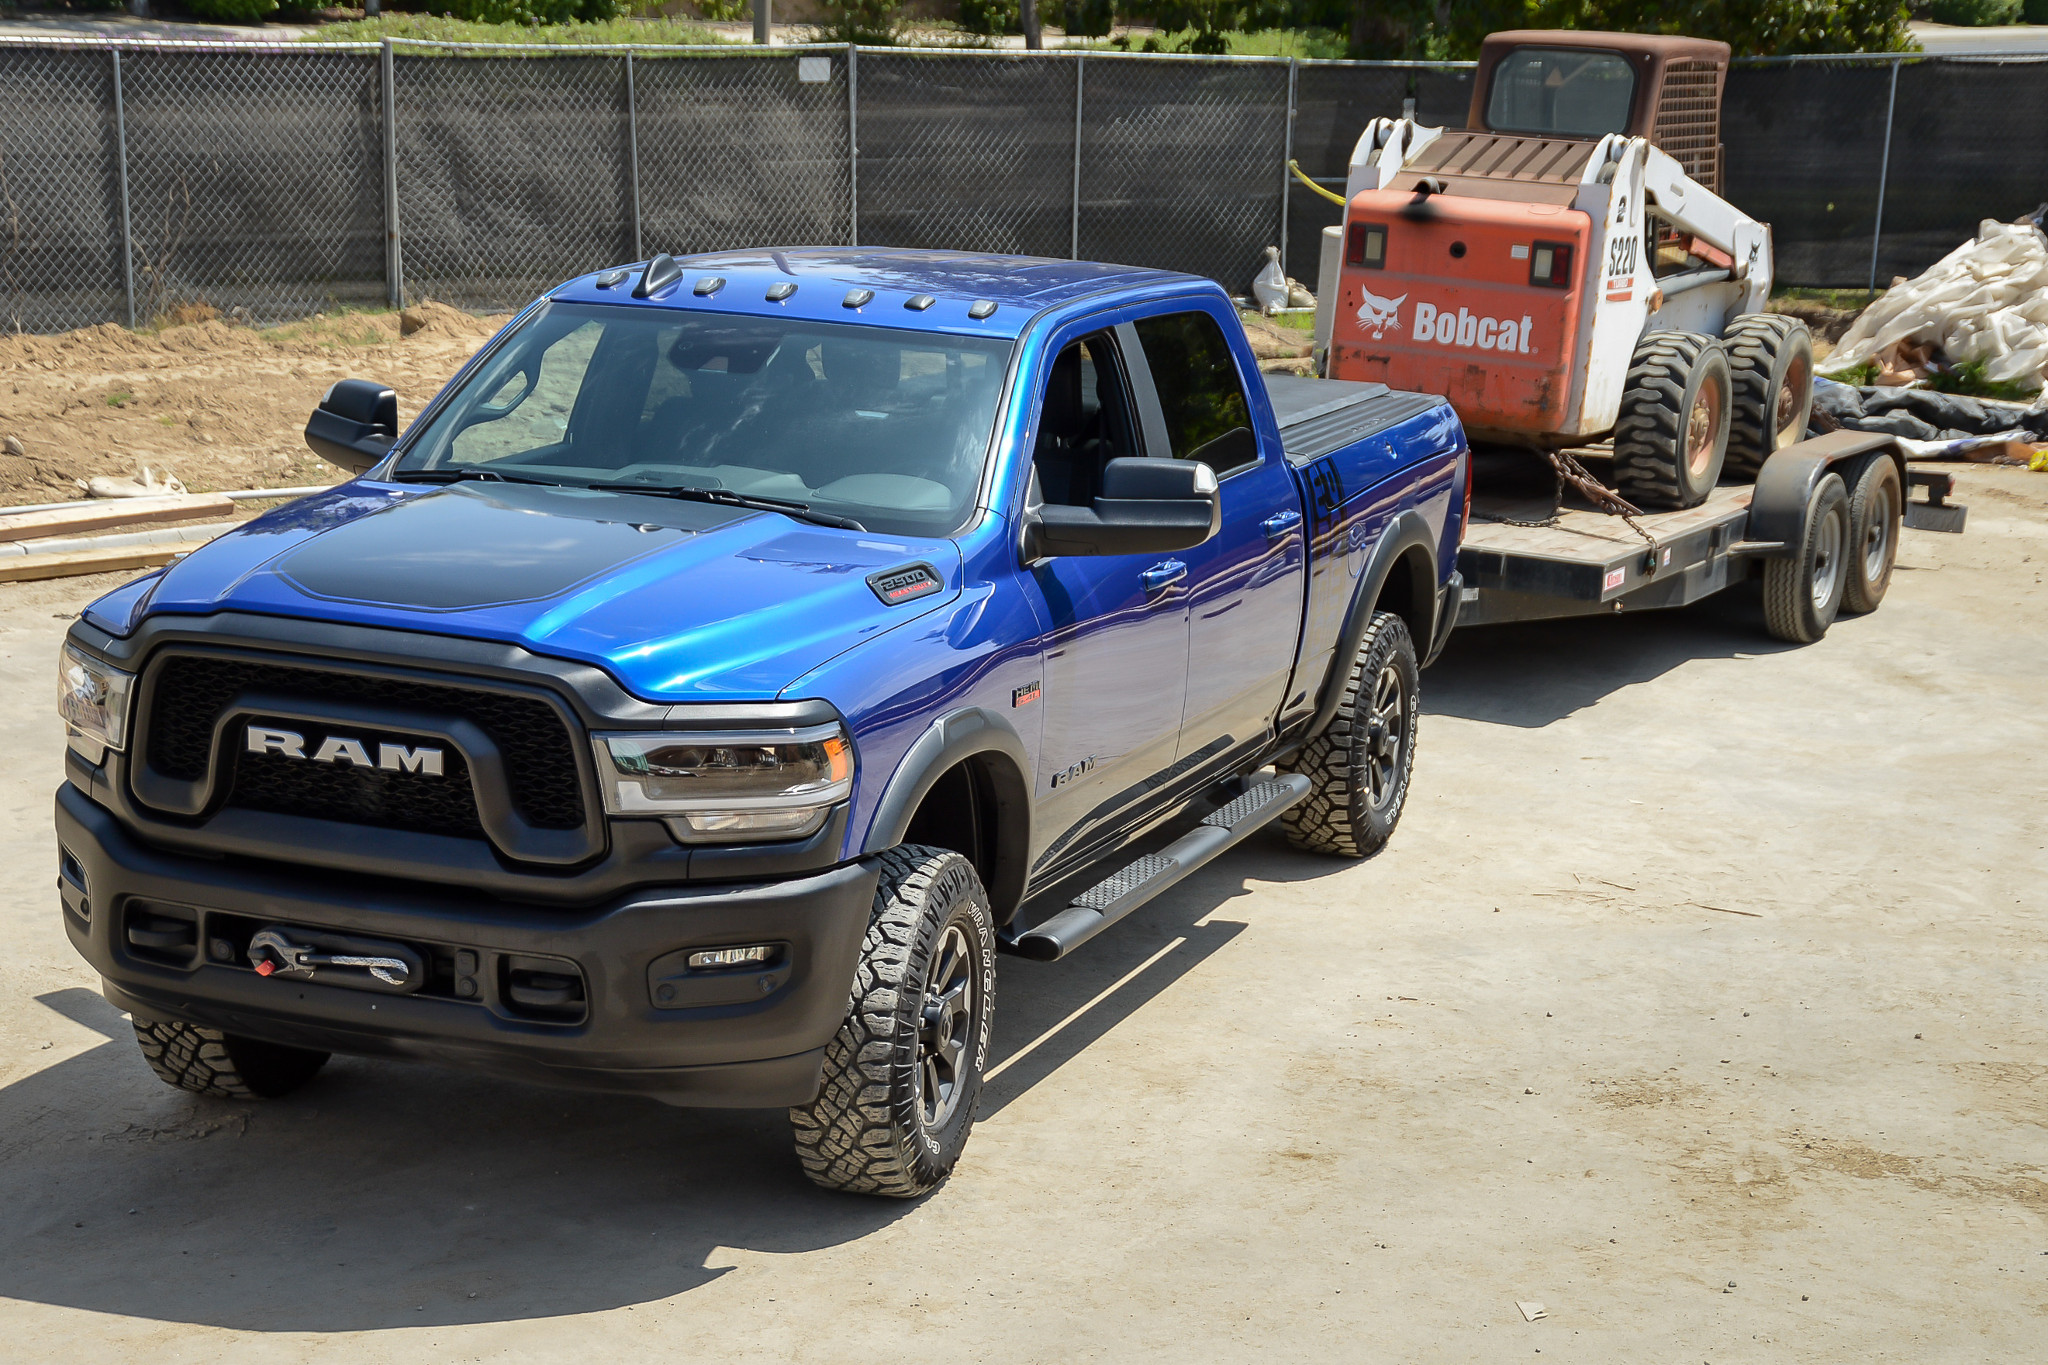 All the Pickup Truck News: Ram Power Wagon at Work, Beefed-Up Ford F-150 and Ranger, and More